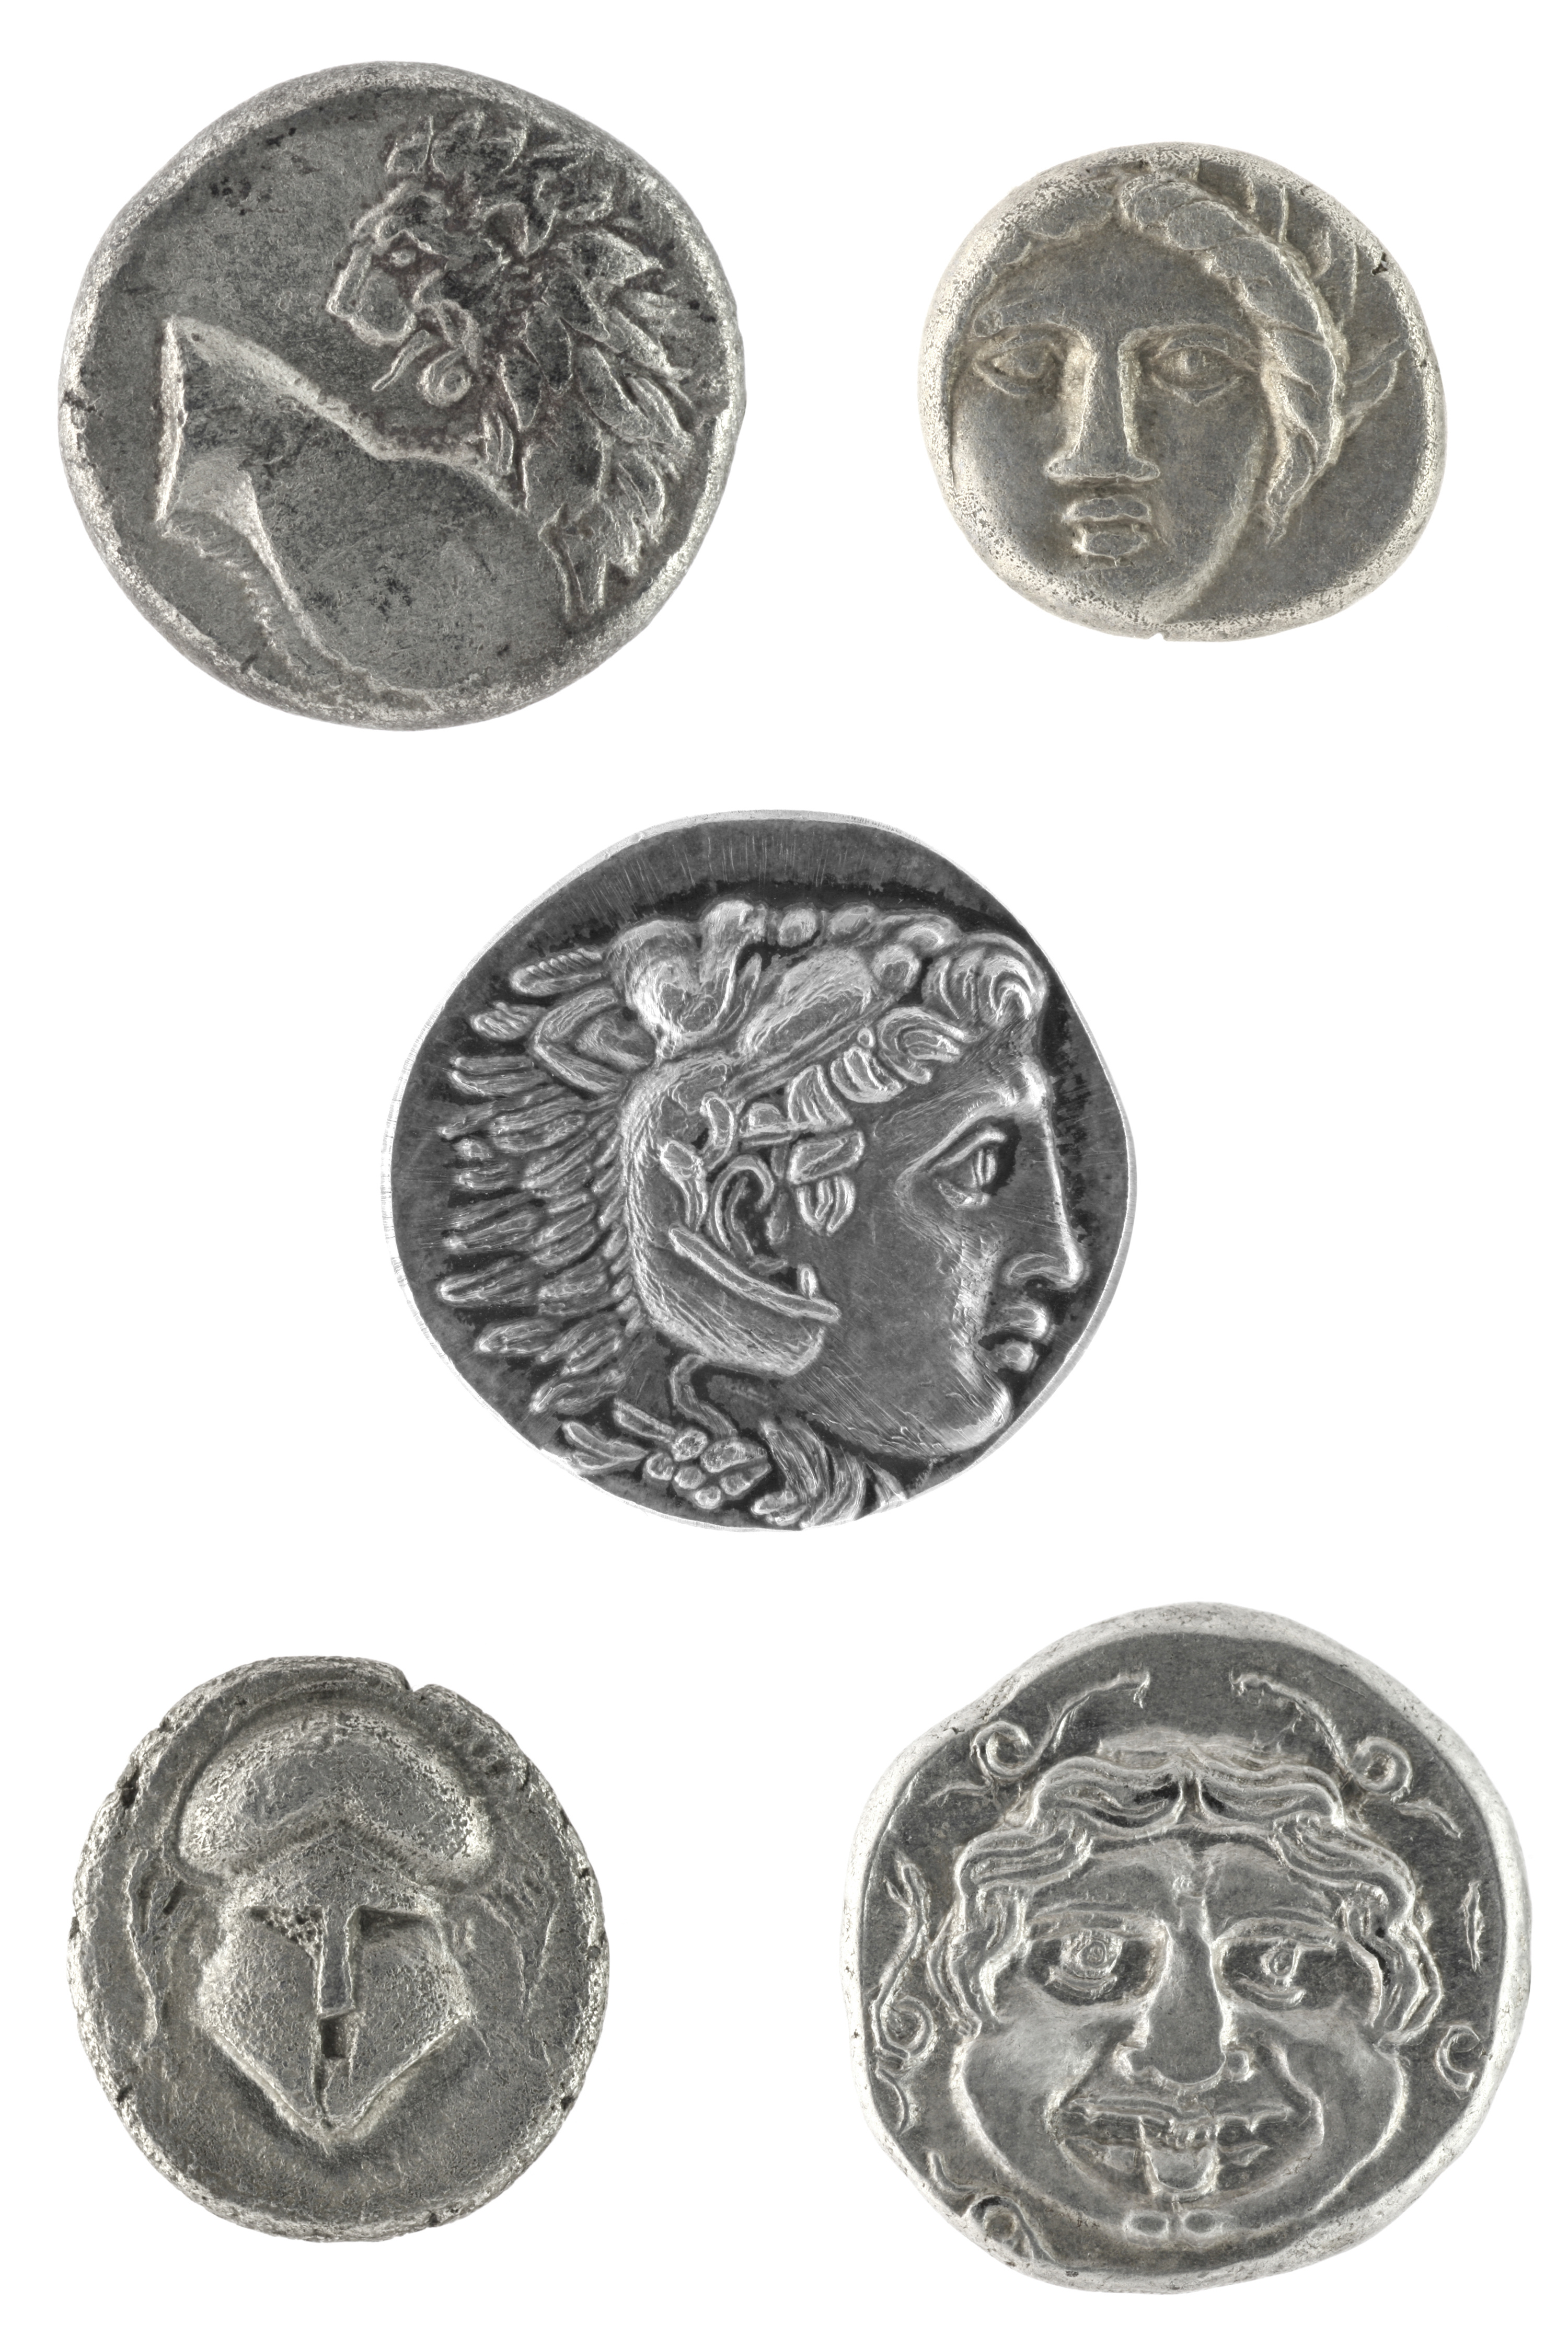 Ancient Greek coins. Image courtesy of Adobe Stock.